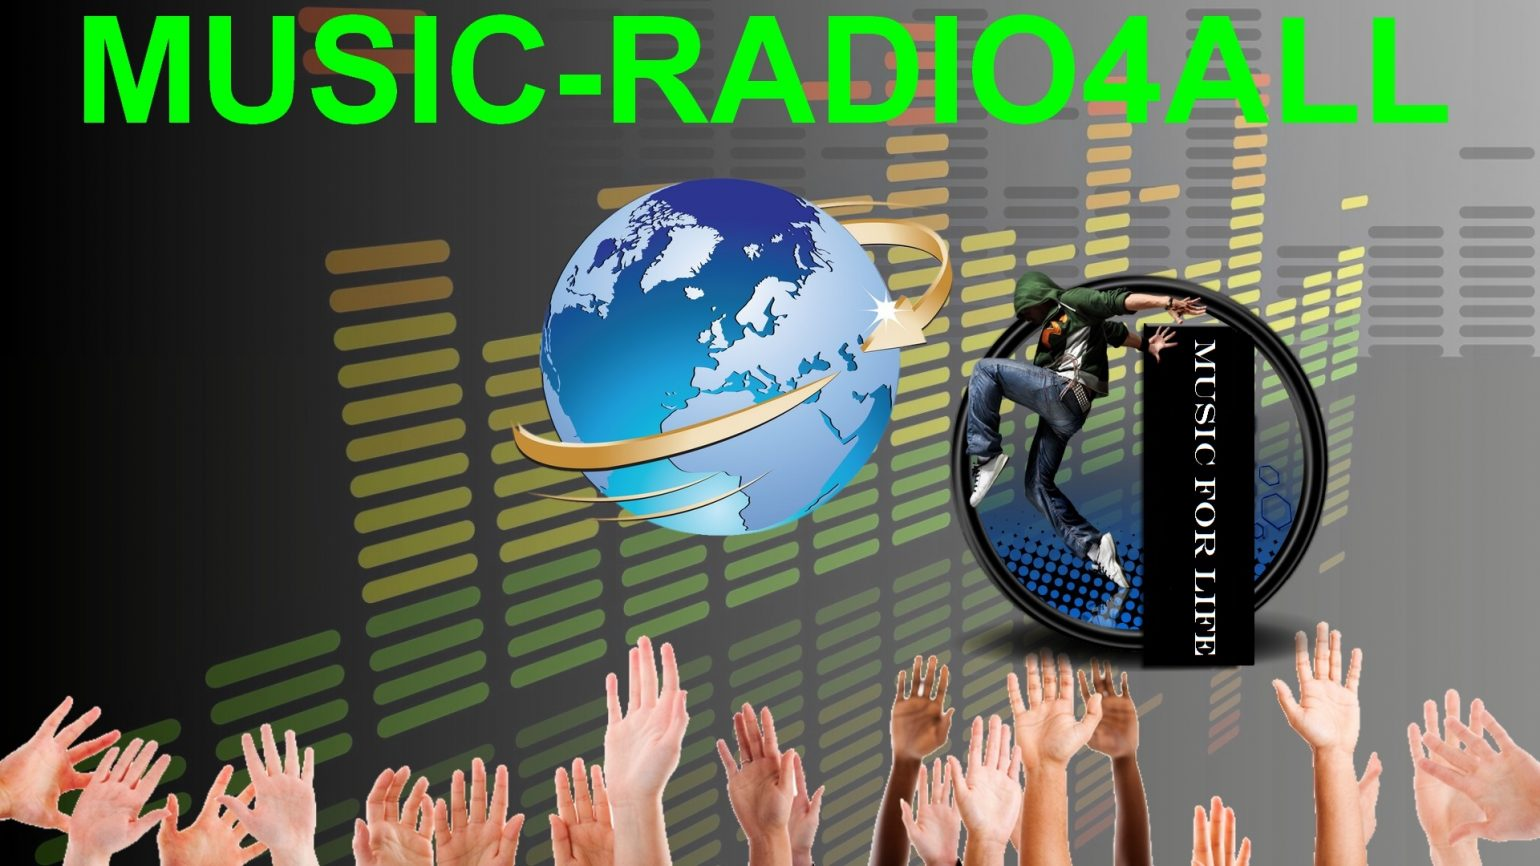 music-radio4all